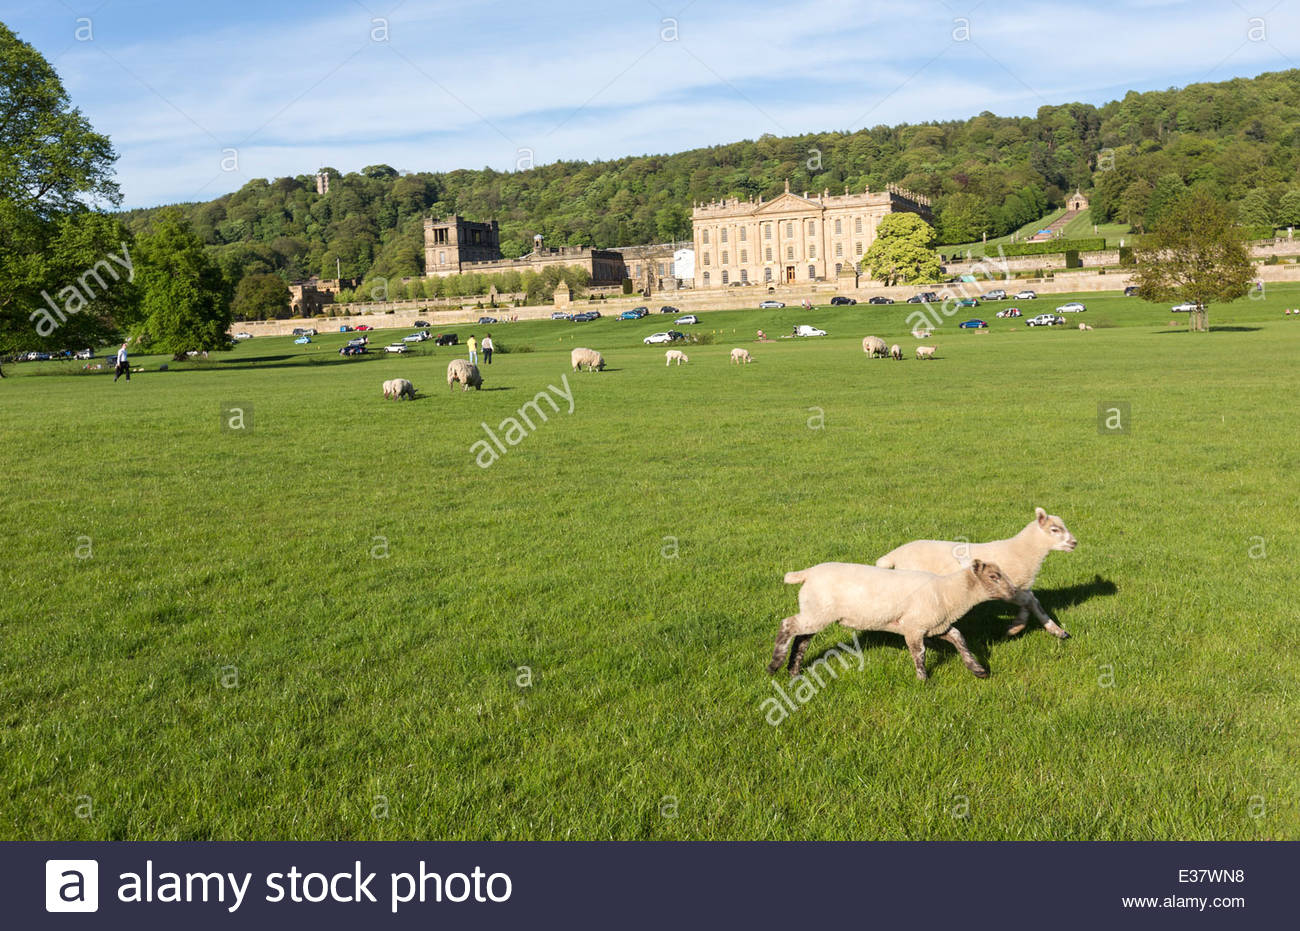 Sheep in the Chatsworth House park - Stock Image